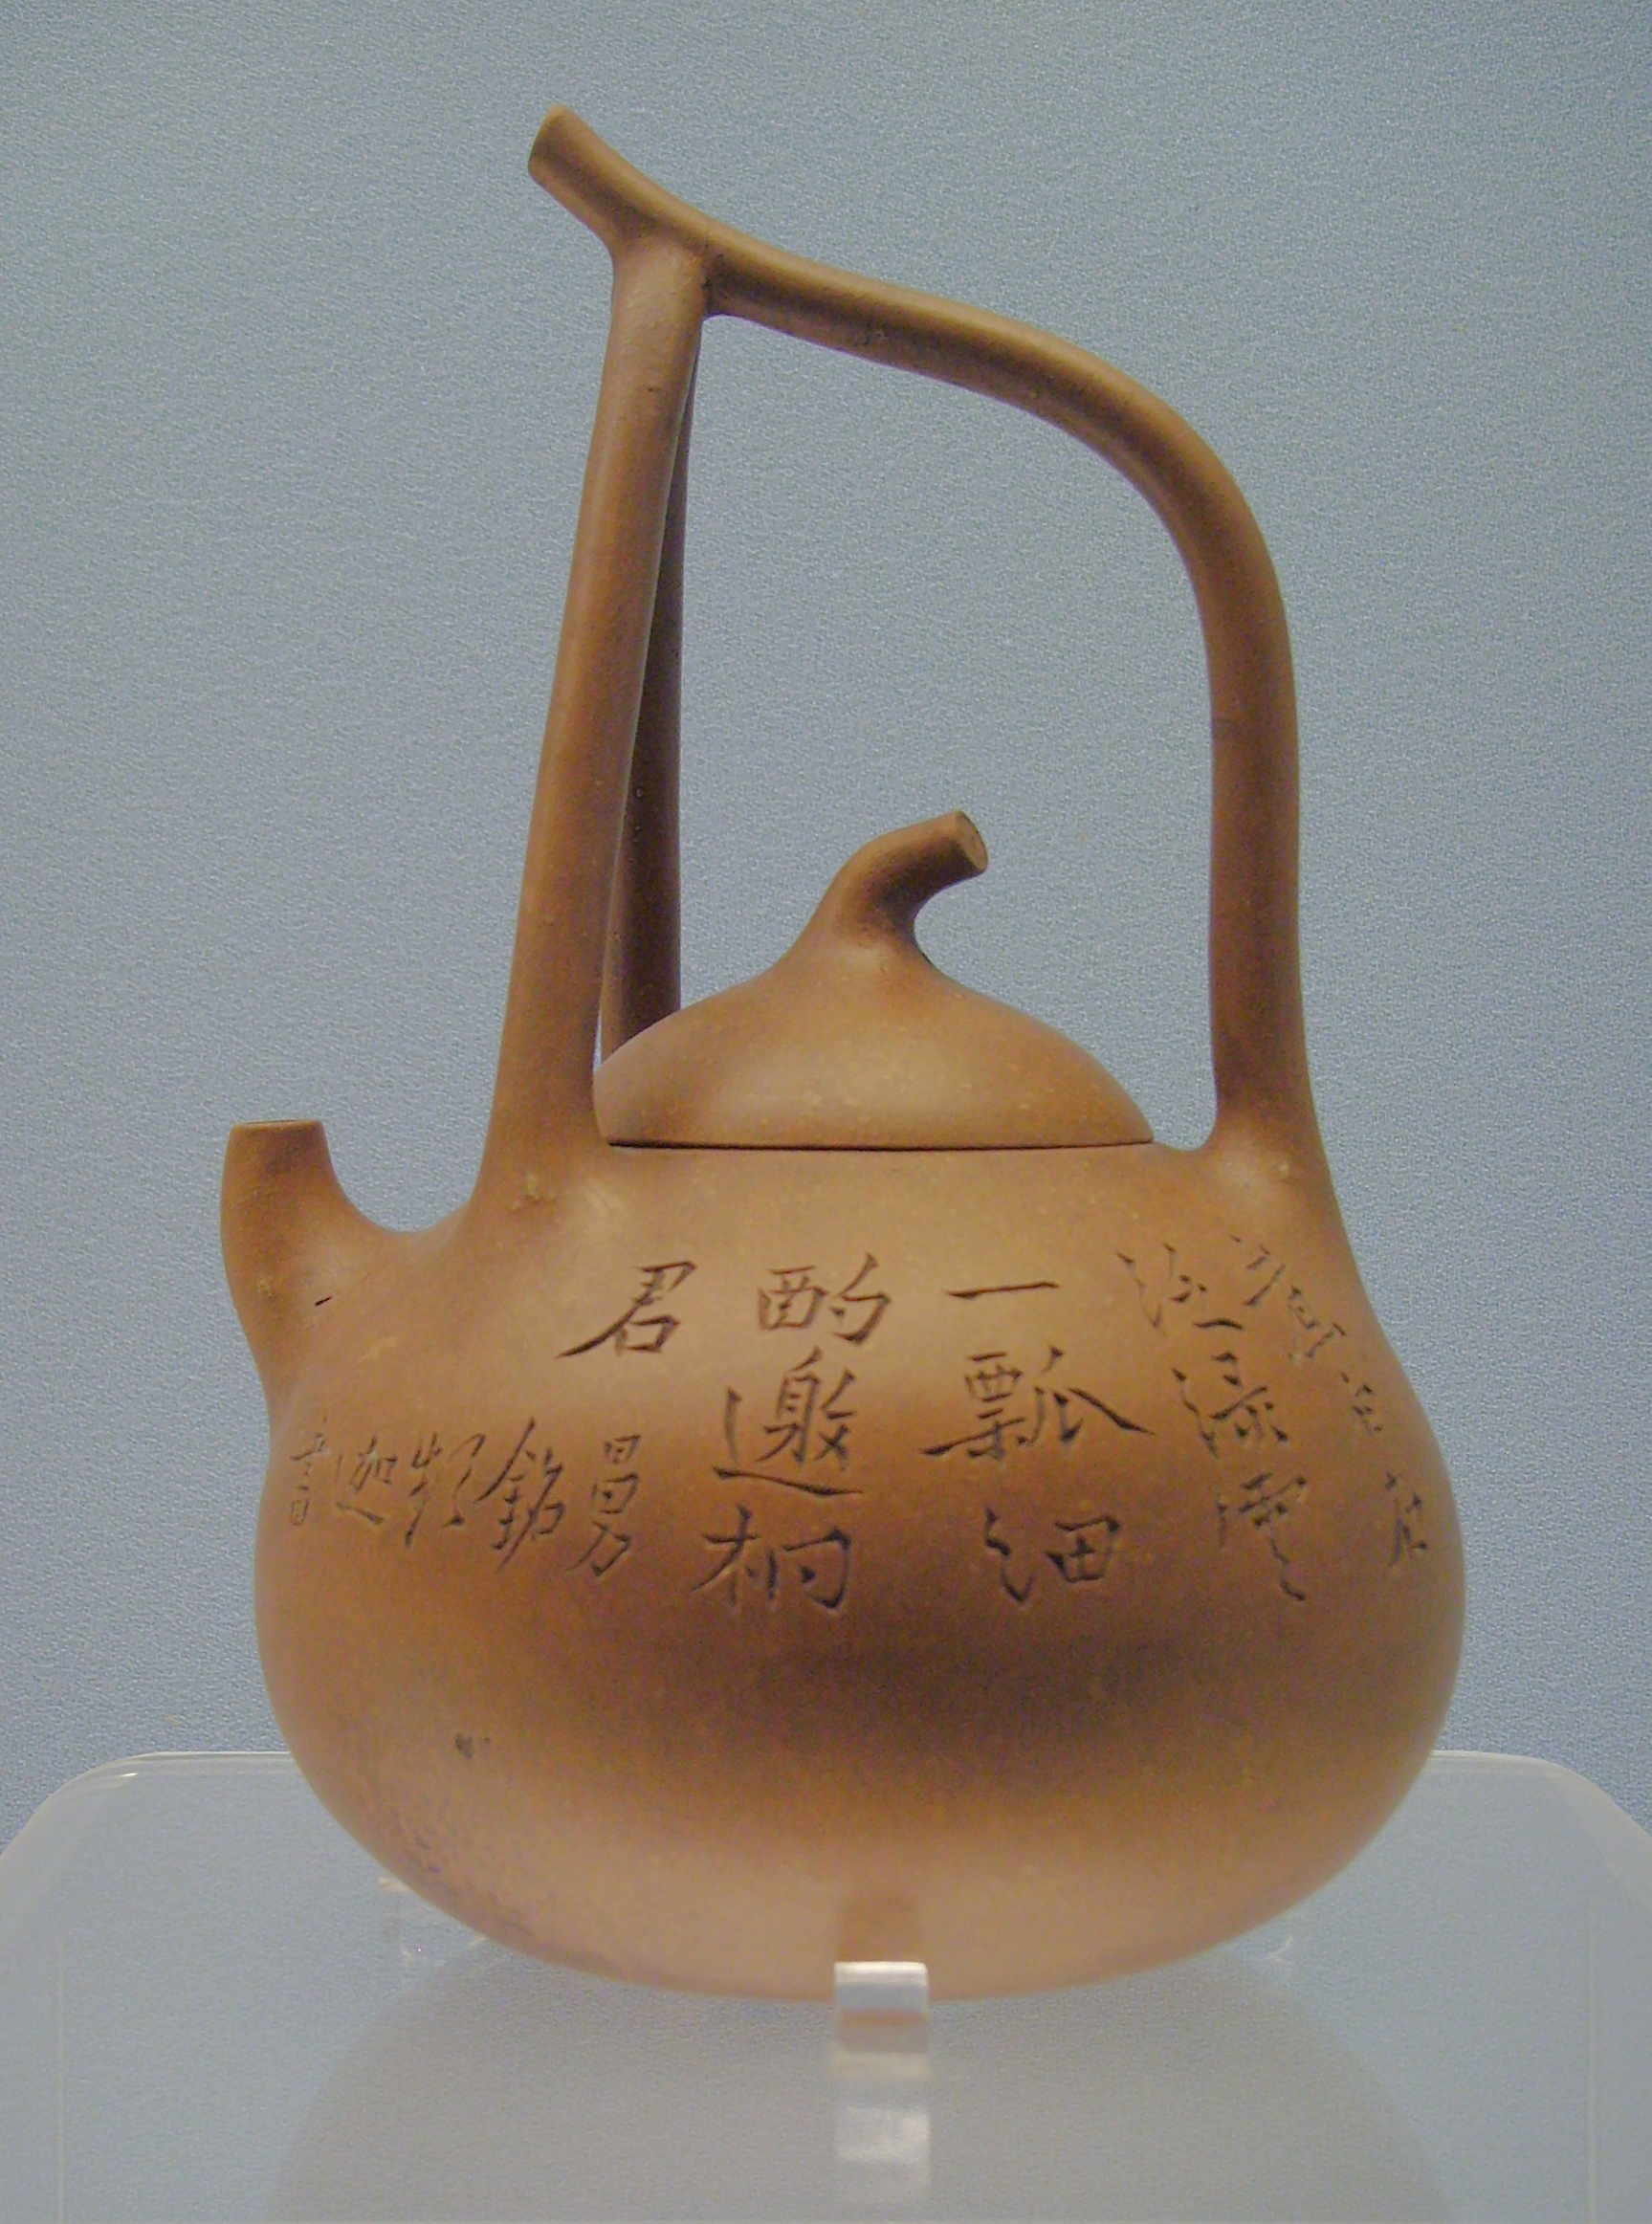 "Shanghai Museum, Shanghai, P. R. of China: Teapot with a looped handle and ""Man Sheng"" Mark; Yixing ware, about 1900. Gerbil, CC BY-SA 3.0 <https://creativecommons.org/licenses/by-sa/3.0>, via Wikimedia Commons"